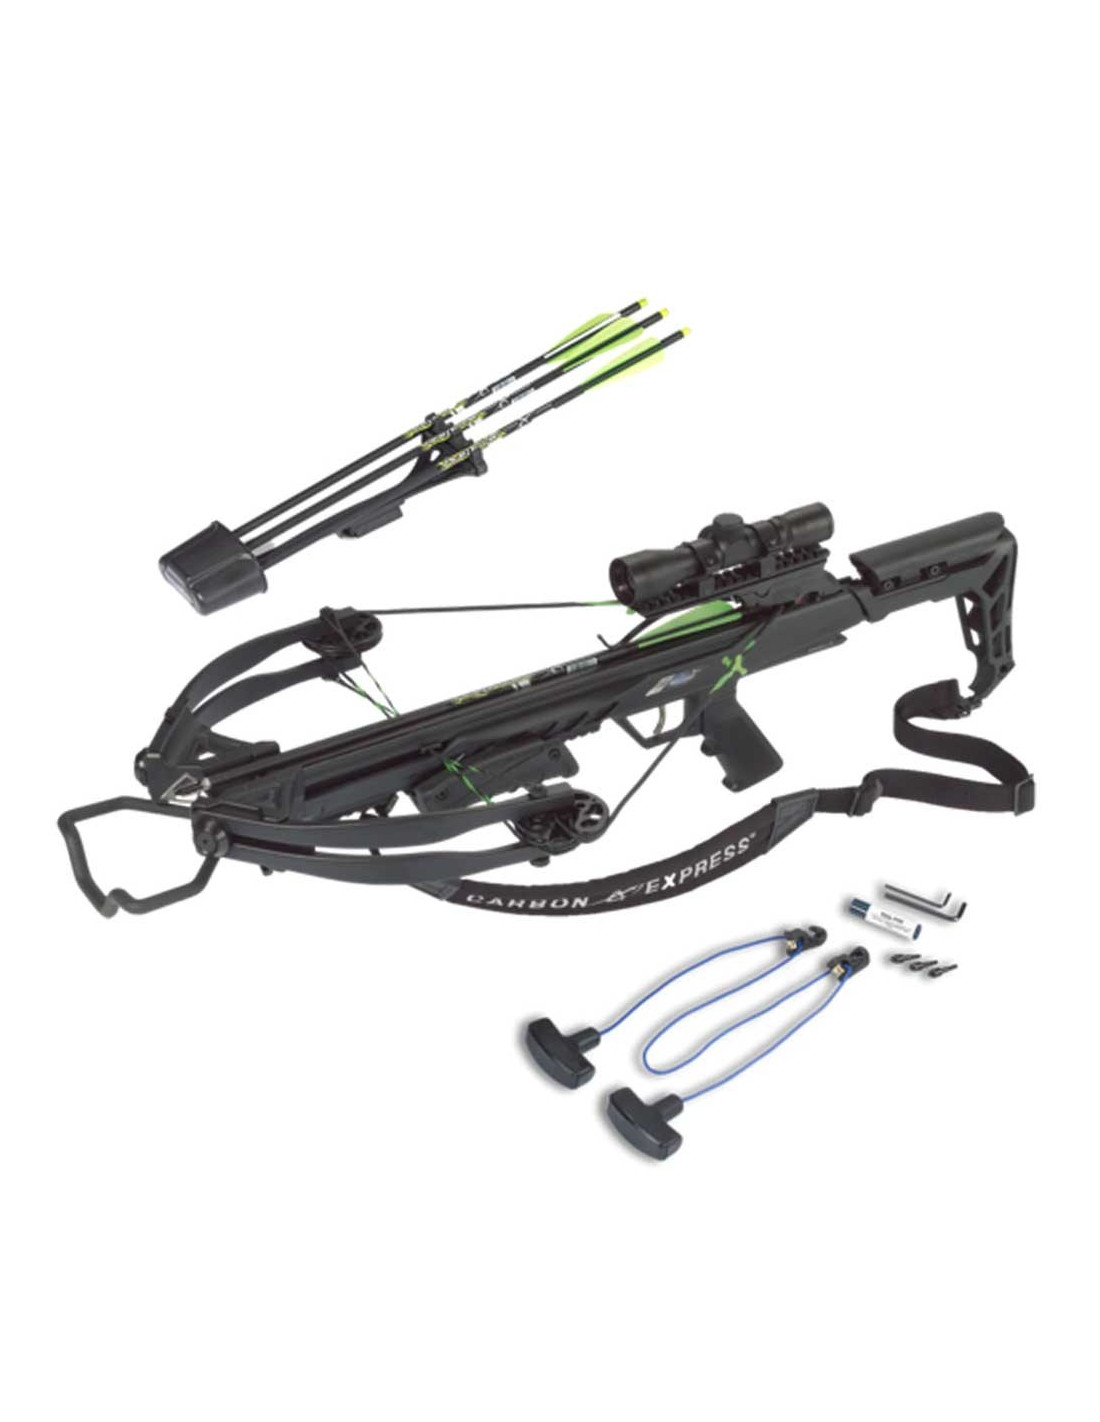 Crossbow Carbon Express Blade BK 165 lbs 330 fps